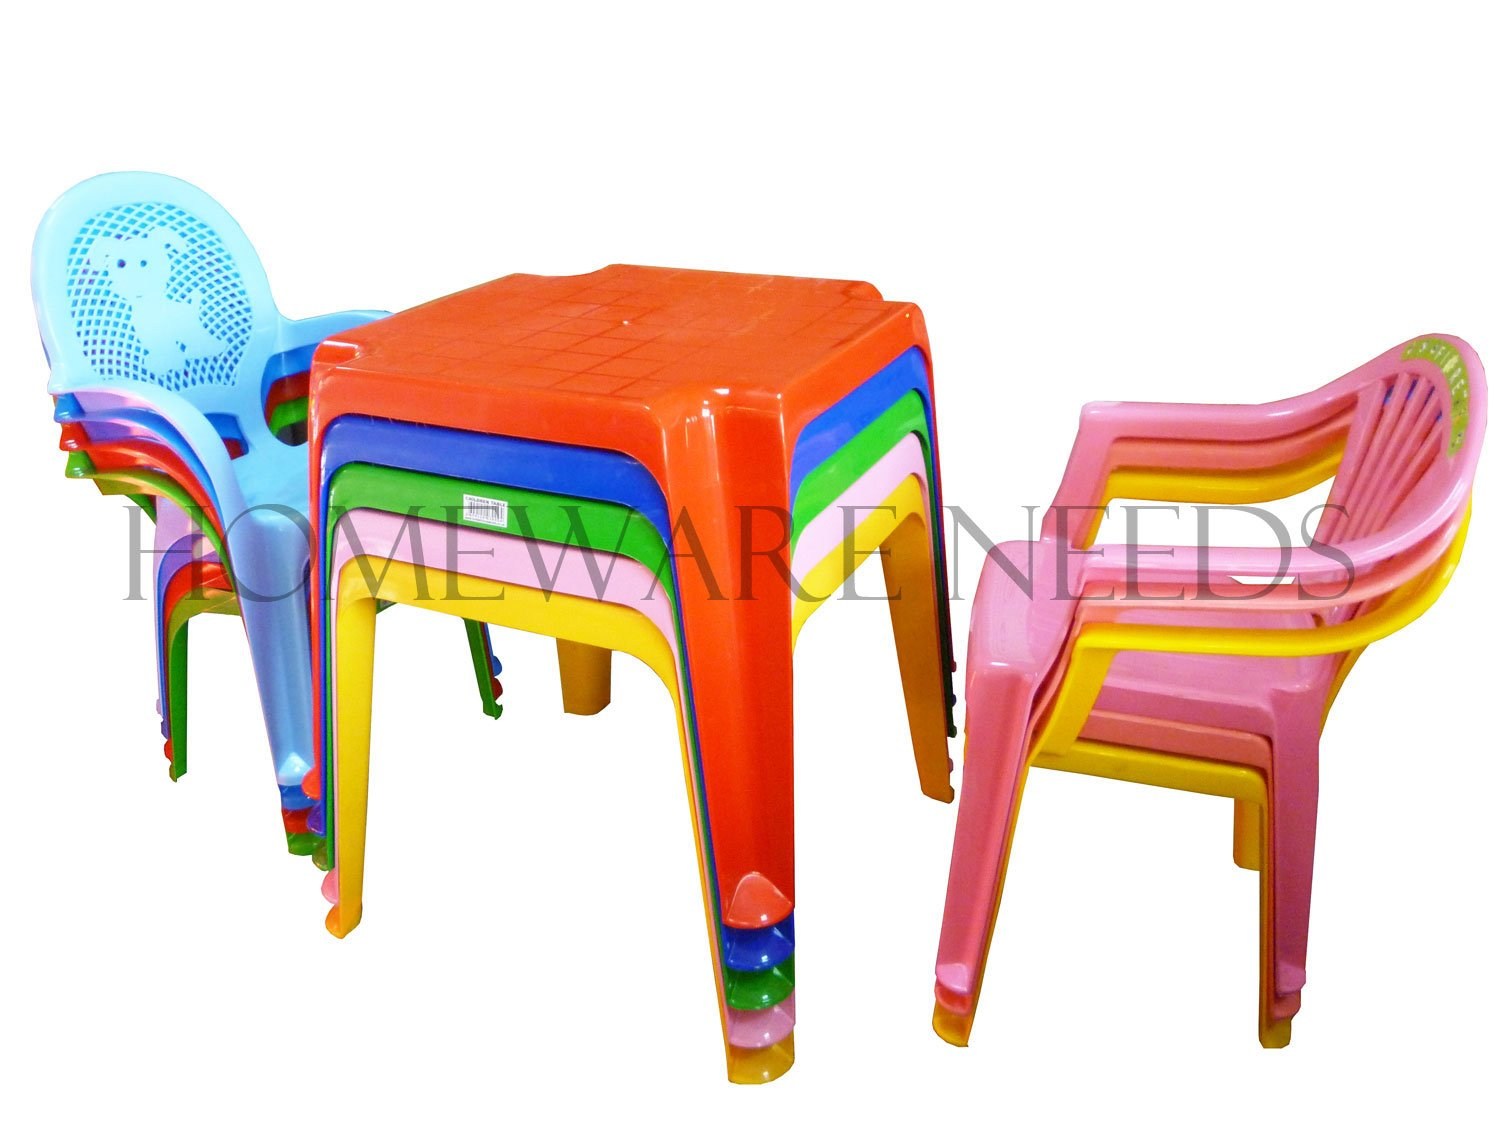 and bed chairs oxgord set activity toddler play for table chair toy plastic size design full cleaning interior kids shower child furniture lounge